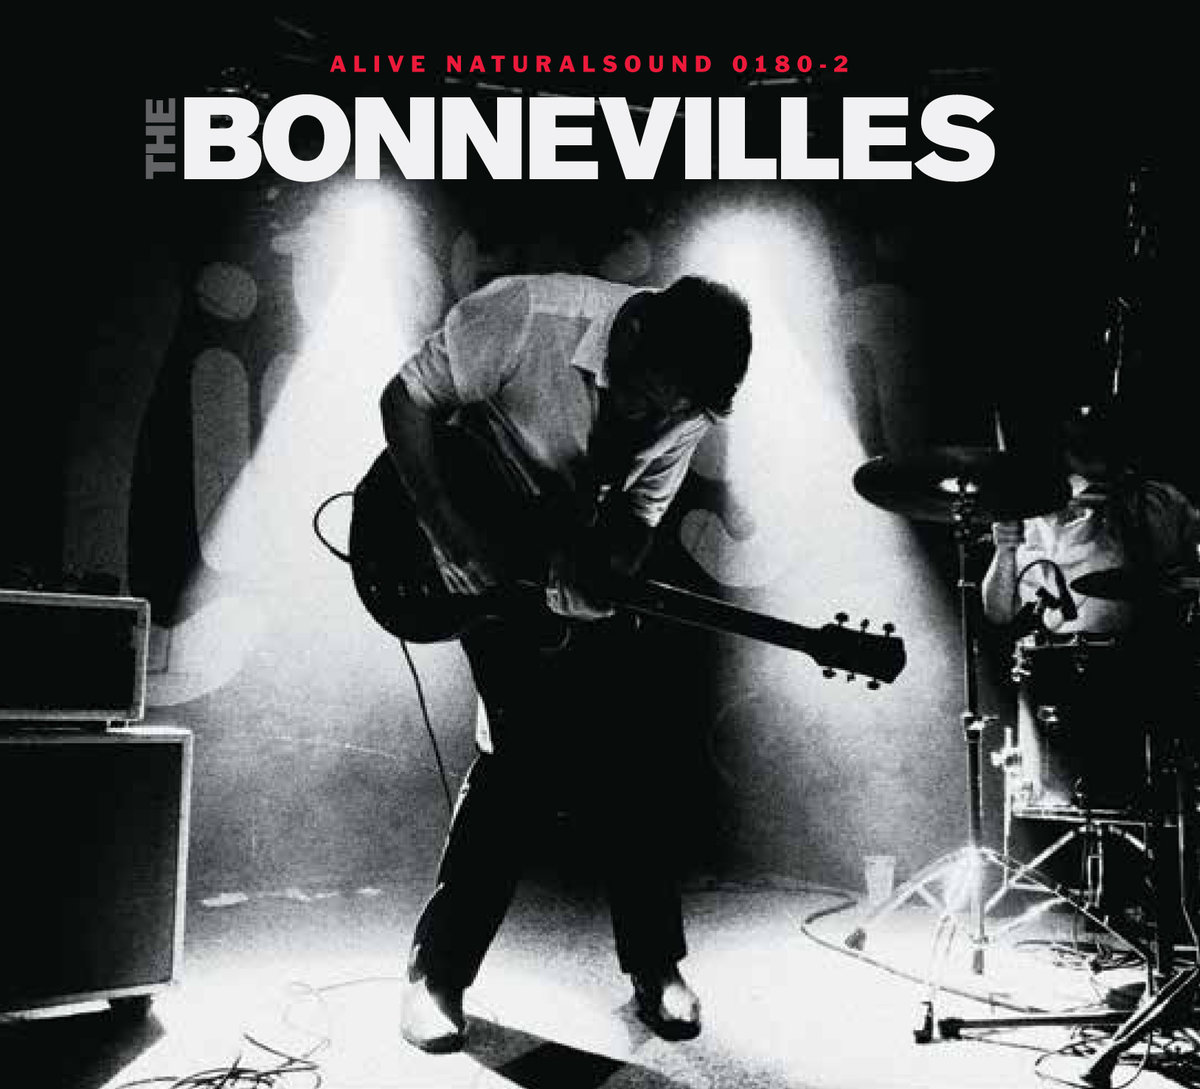 The Bonnevilles - Arrow Pierce of My Heart